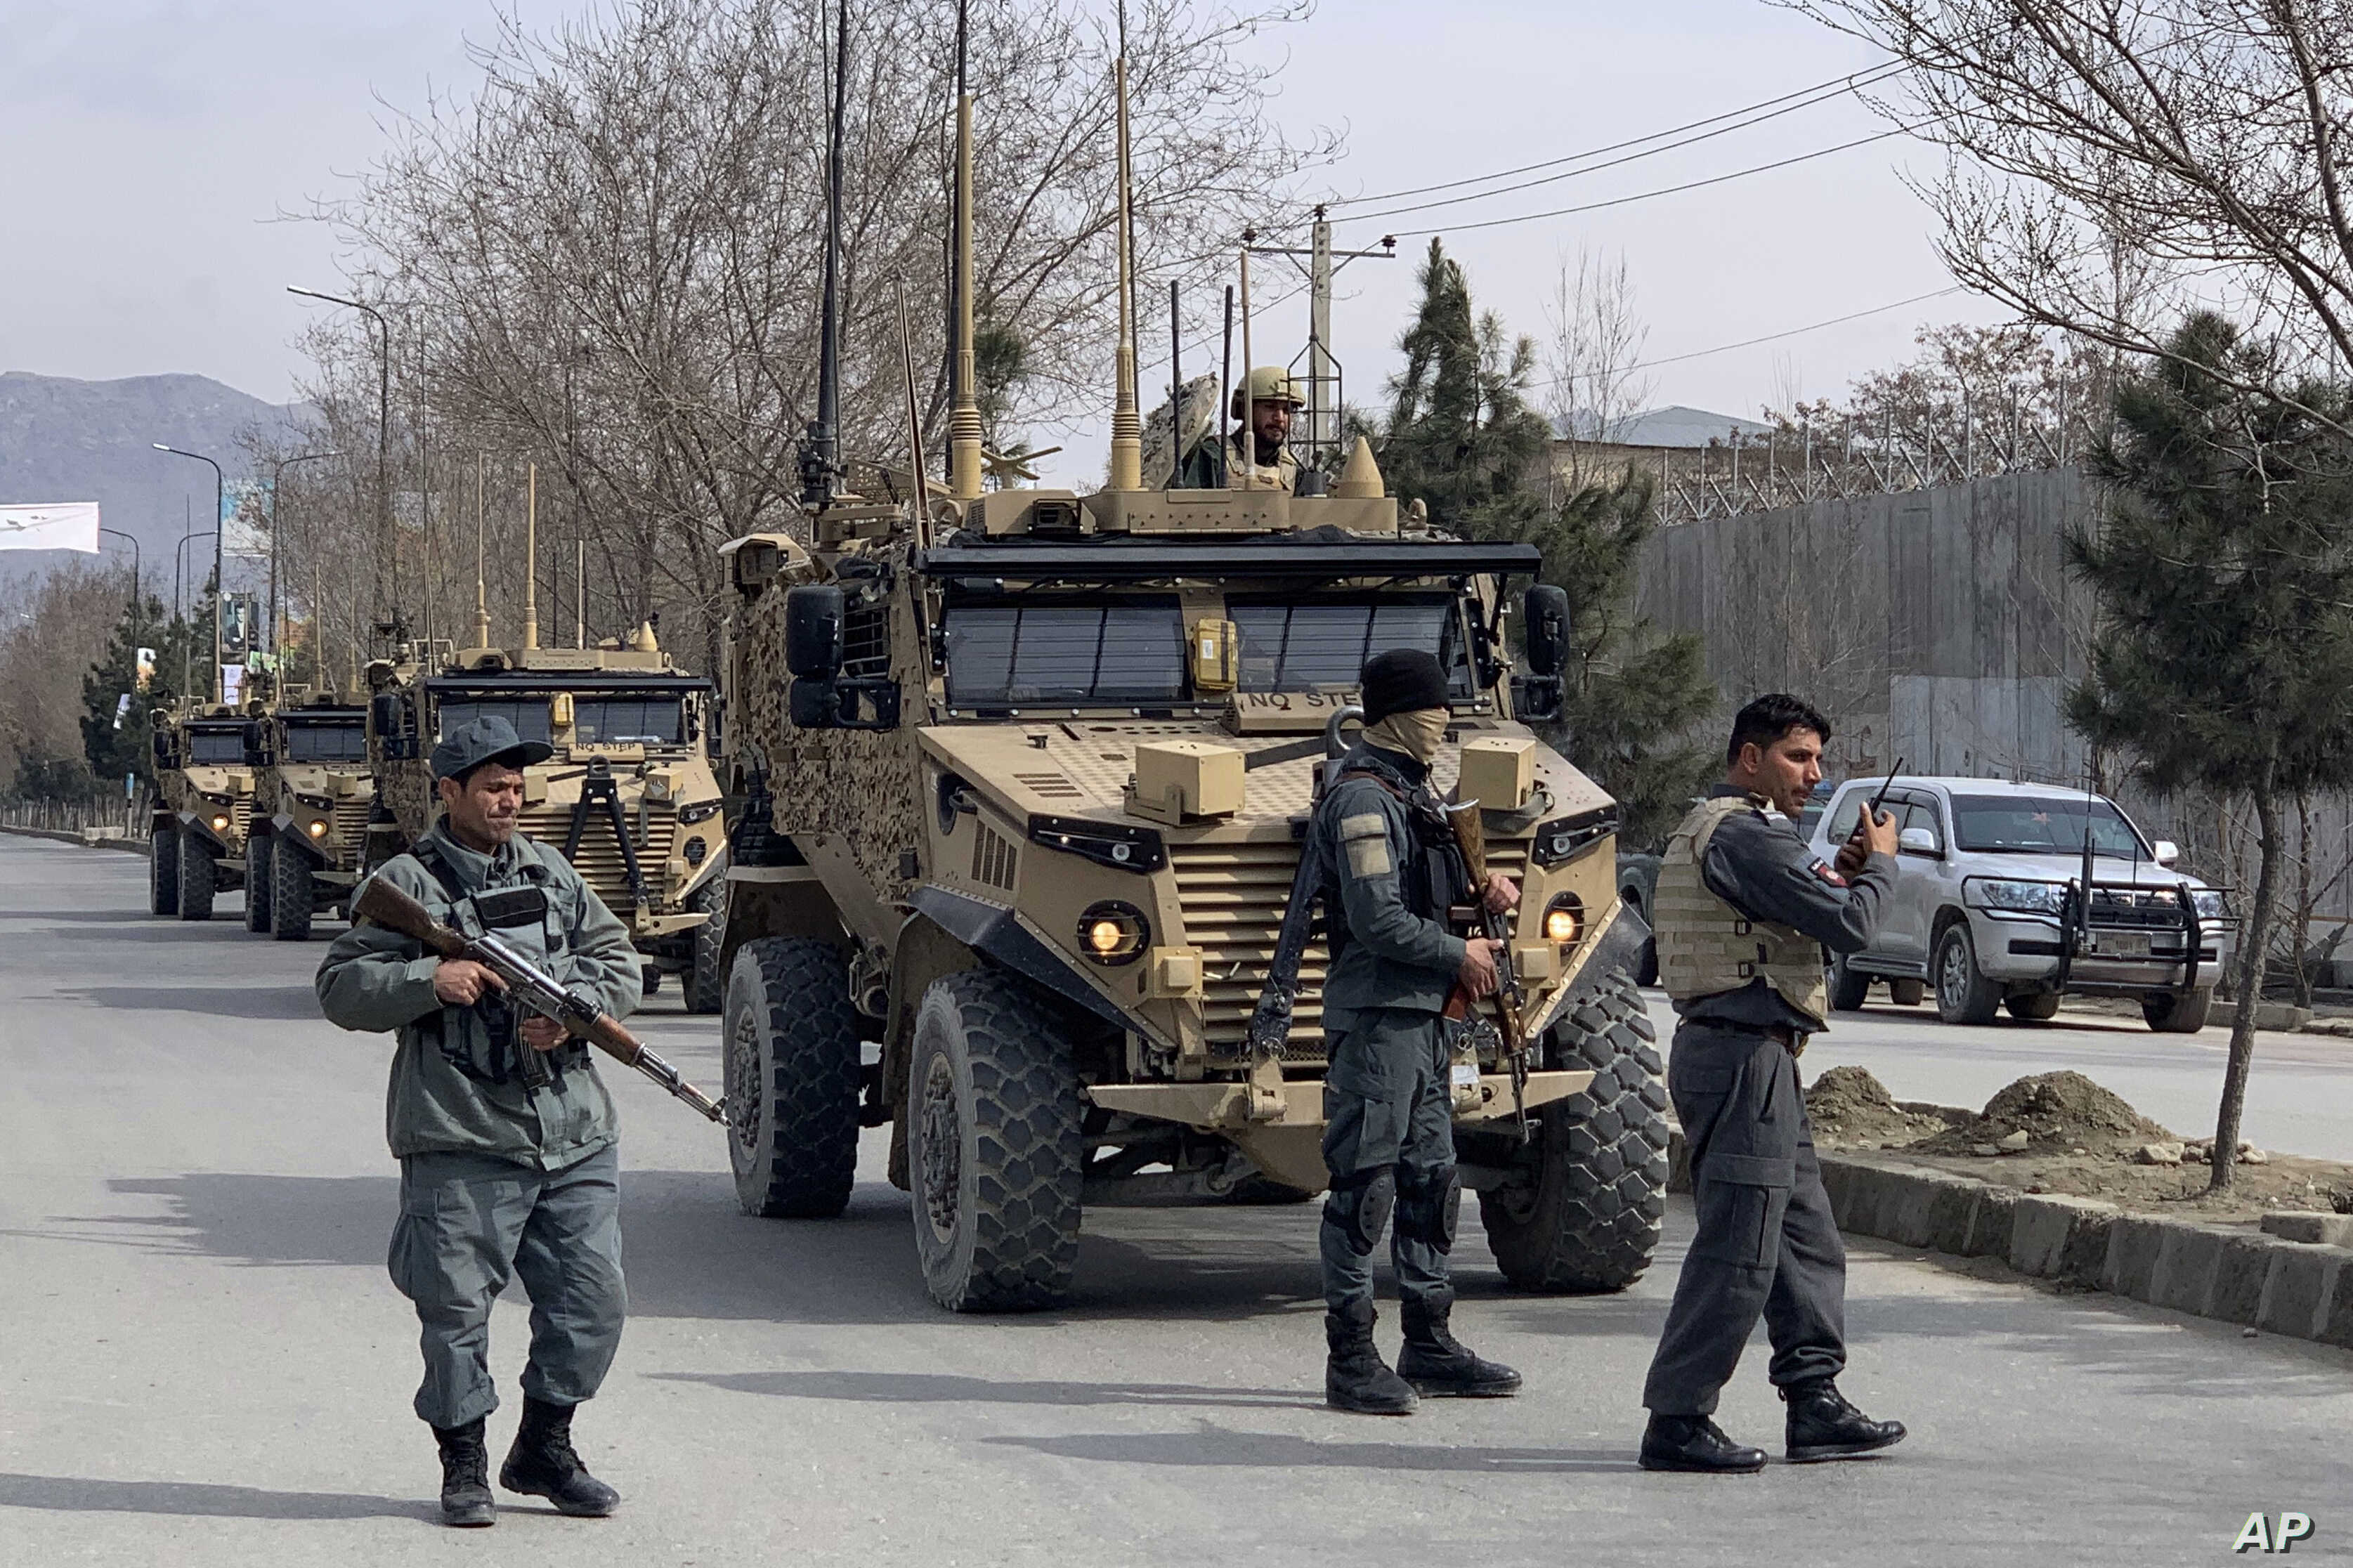 At least 32 killed in attack in Afghan capital